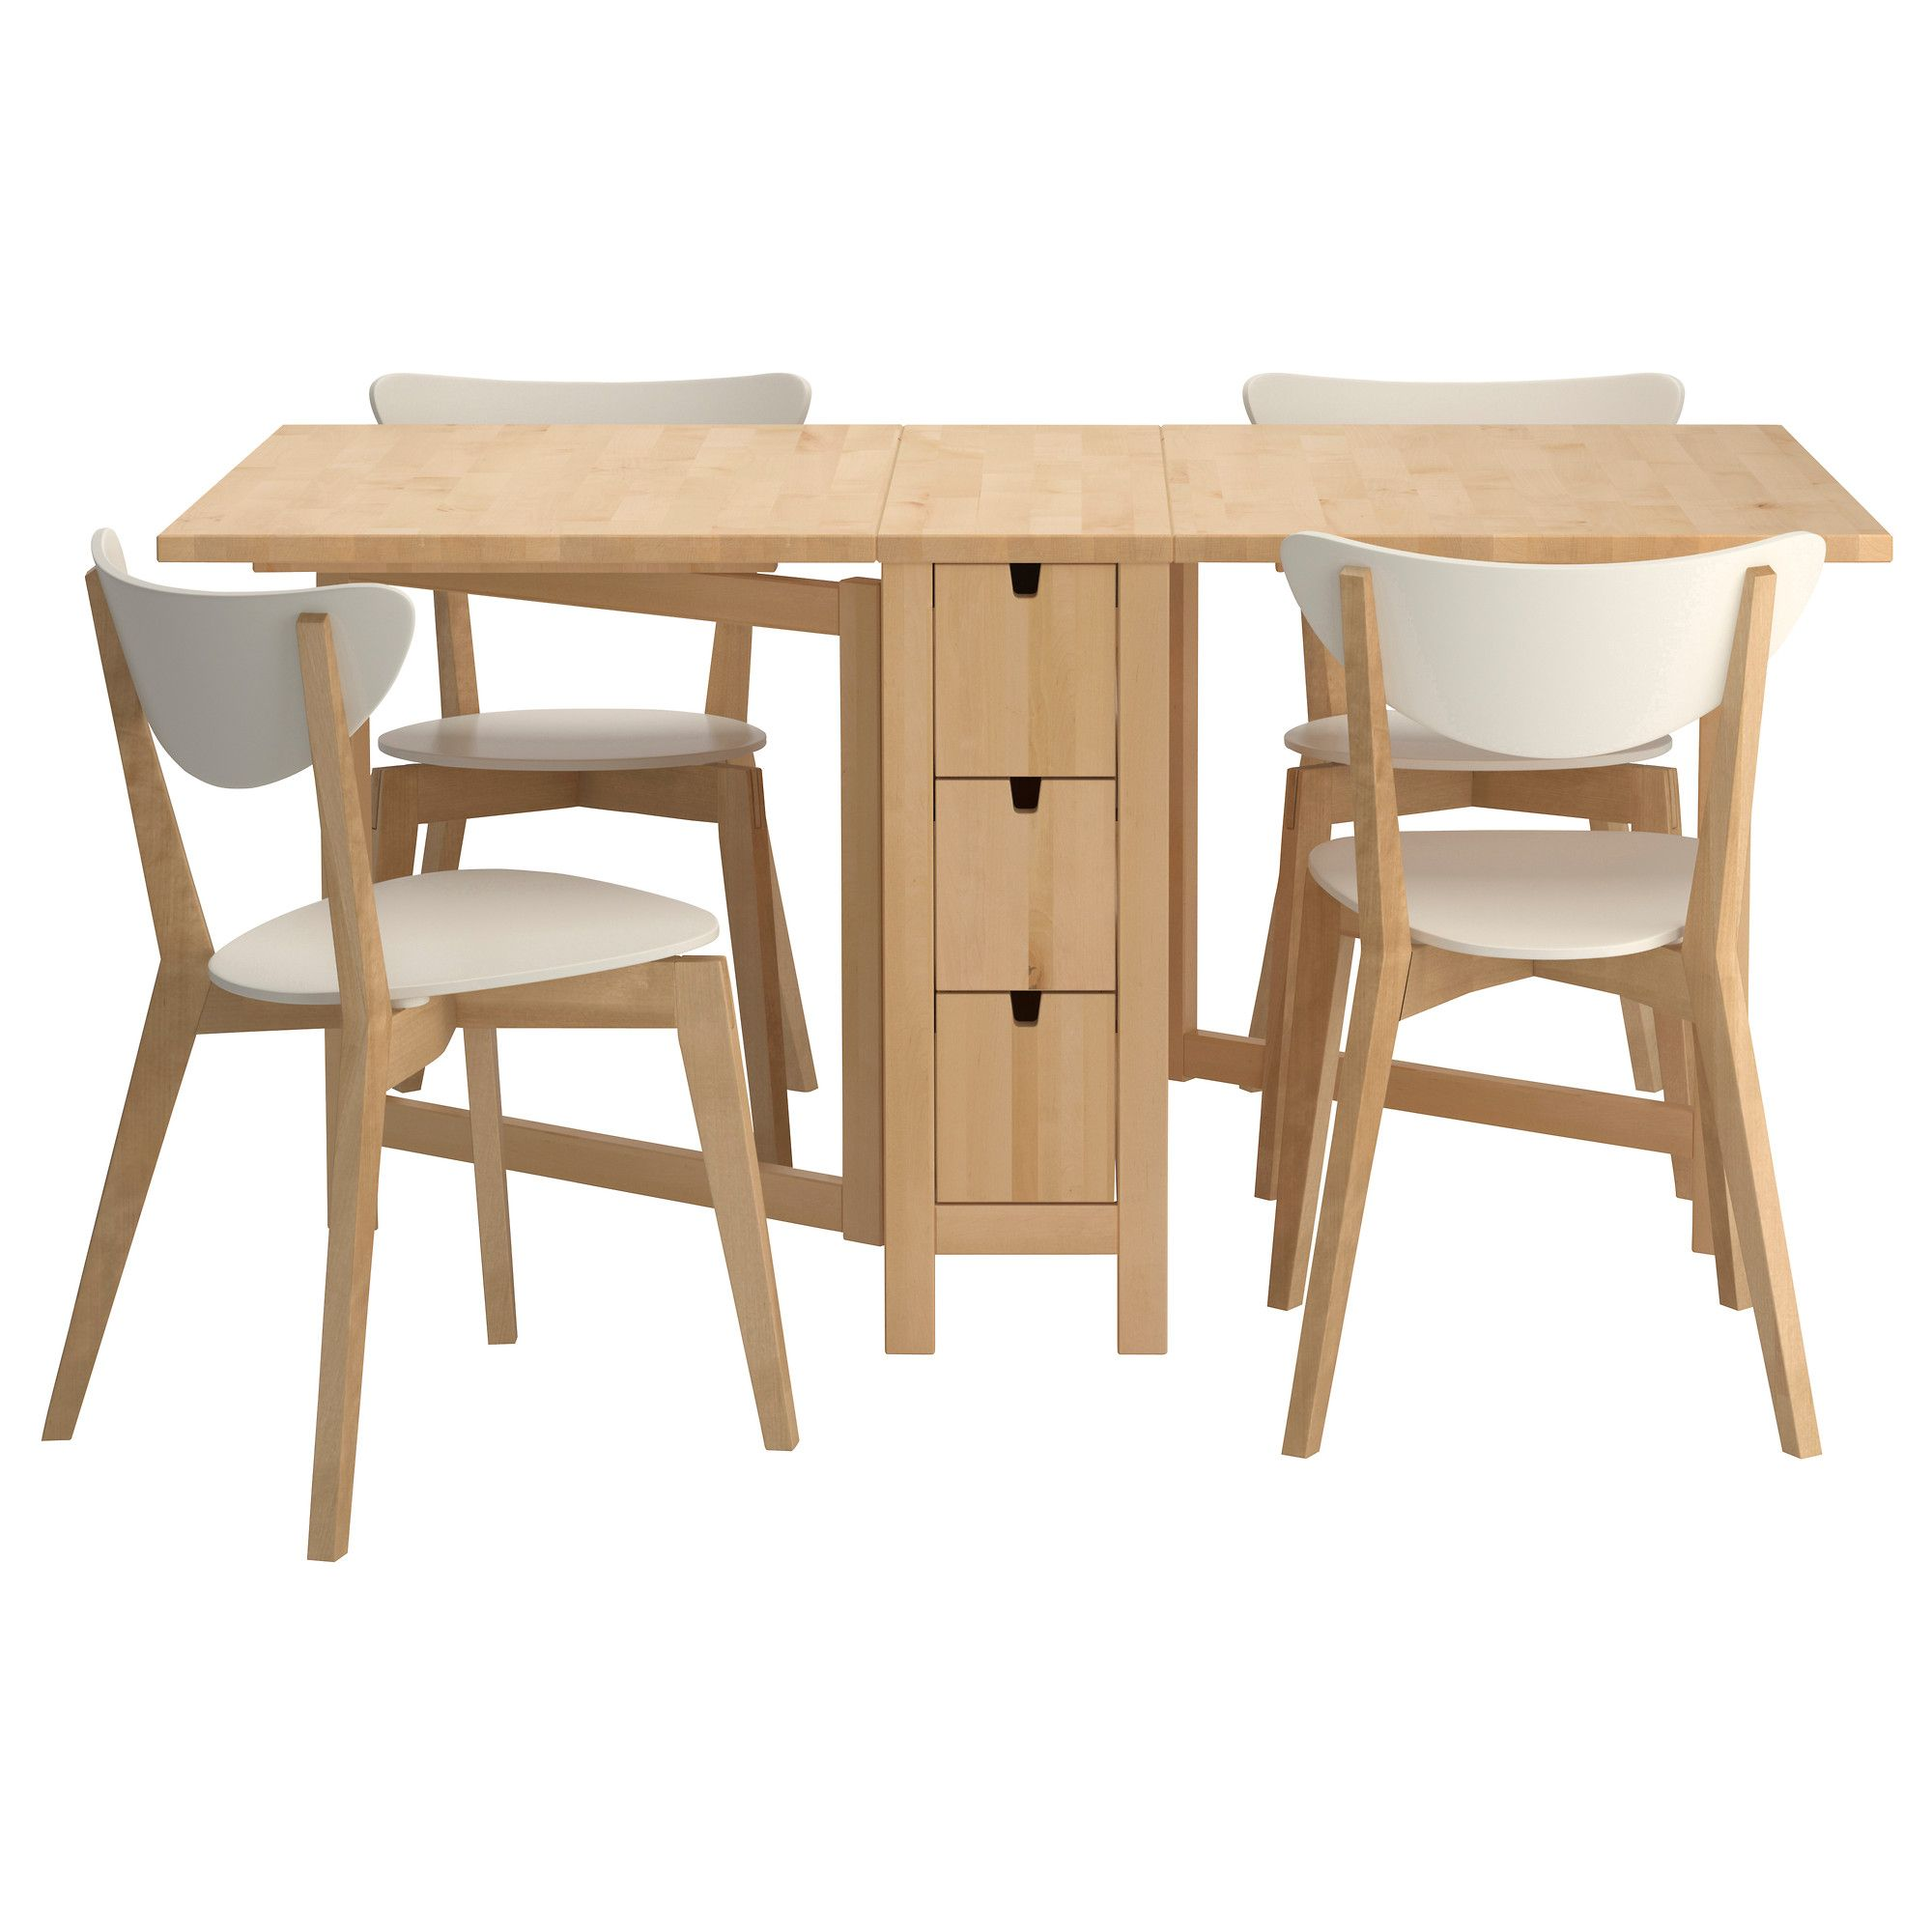 Explore Small Dining Room Tables And More